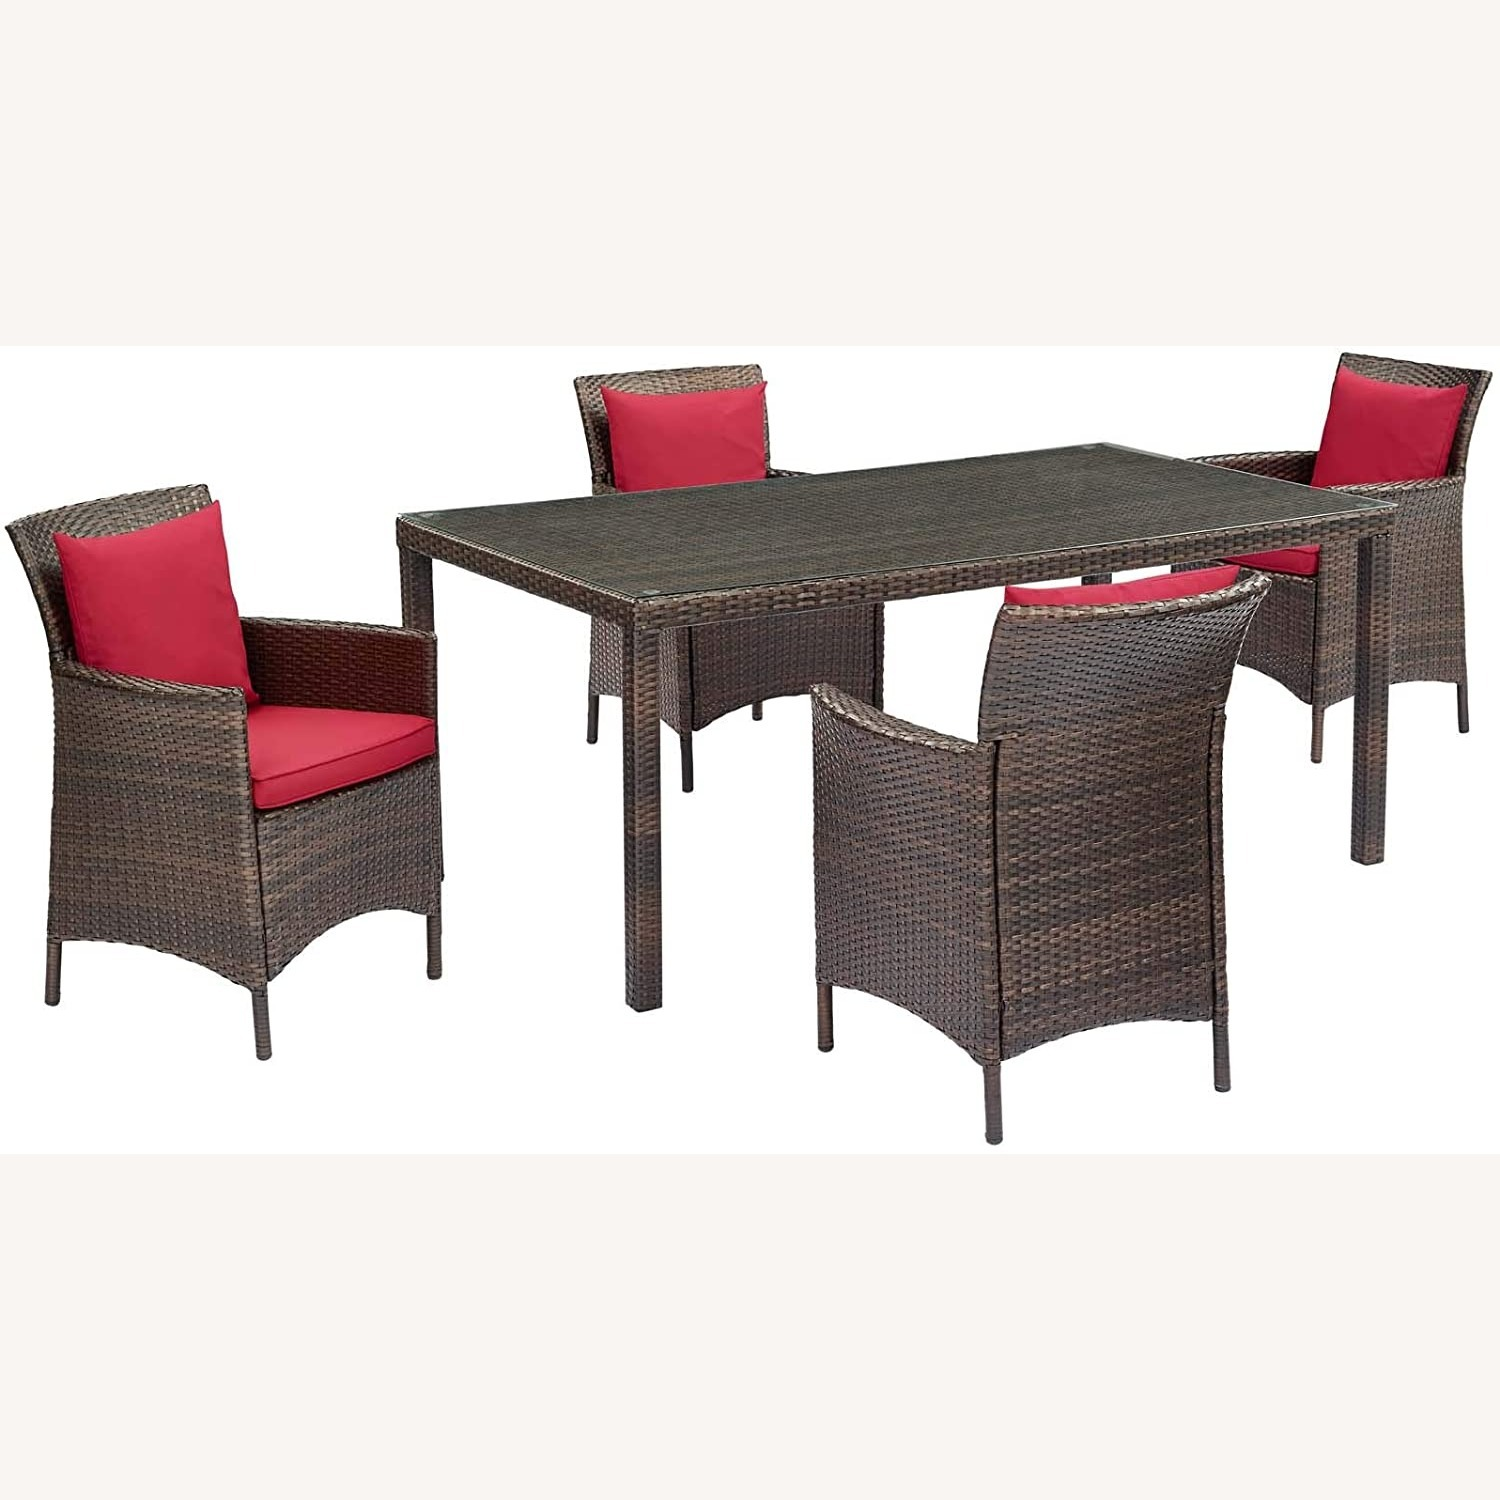 Modern 5-Piece Patio Dining Set In Brown & Red - image-0